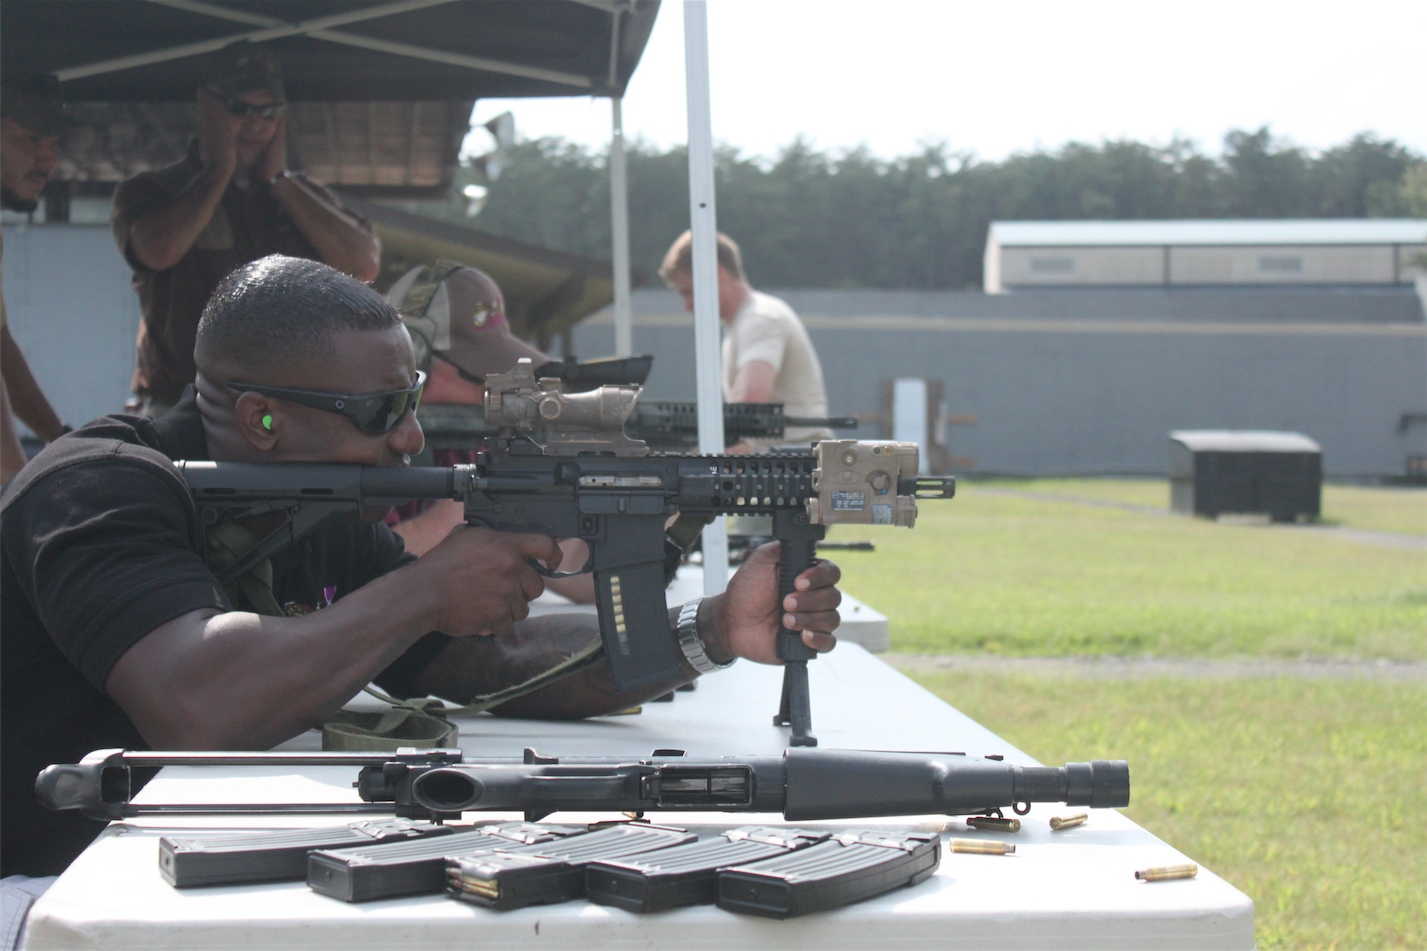 A man is shooting a rifle at an outdoor gun range.